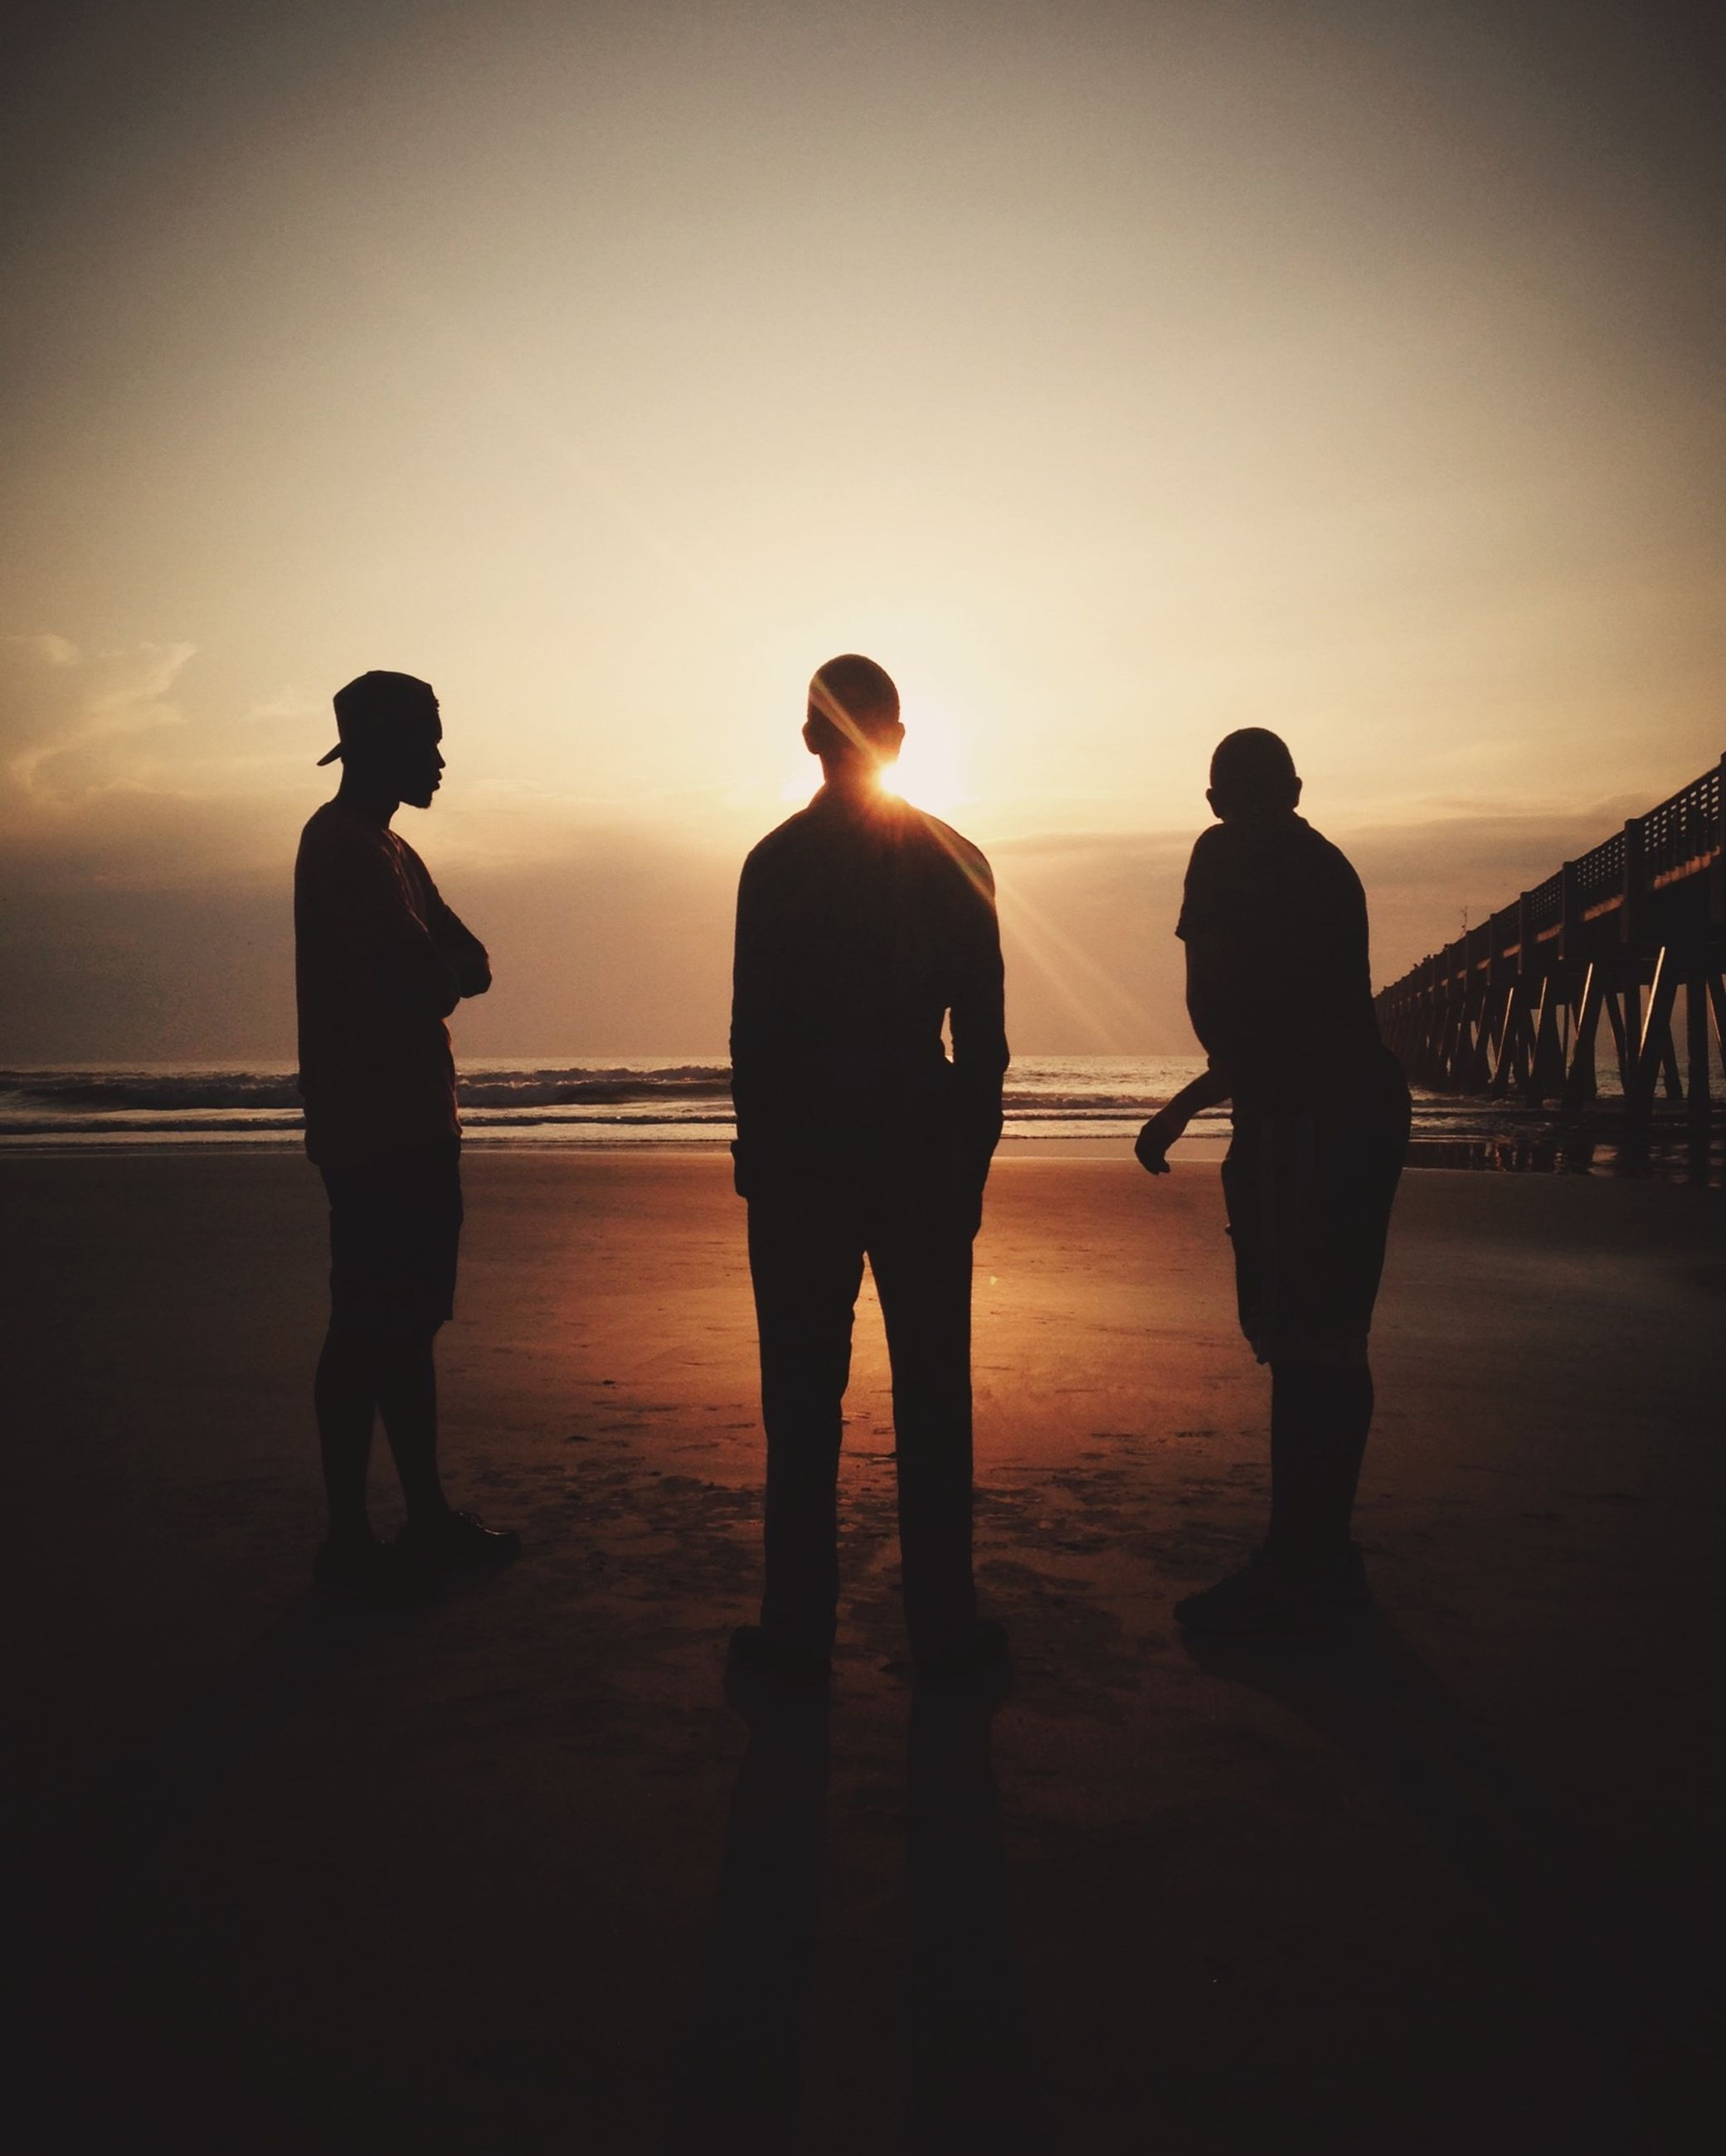 sunset, silhouette, men, full length, togetherness, lifestyles, standing, sky, leisure activity, walking, person, rear view, copy space, clear sky, orange color, sea, beach, bonding